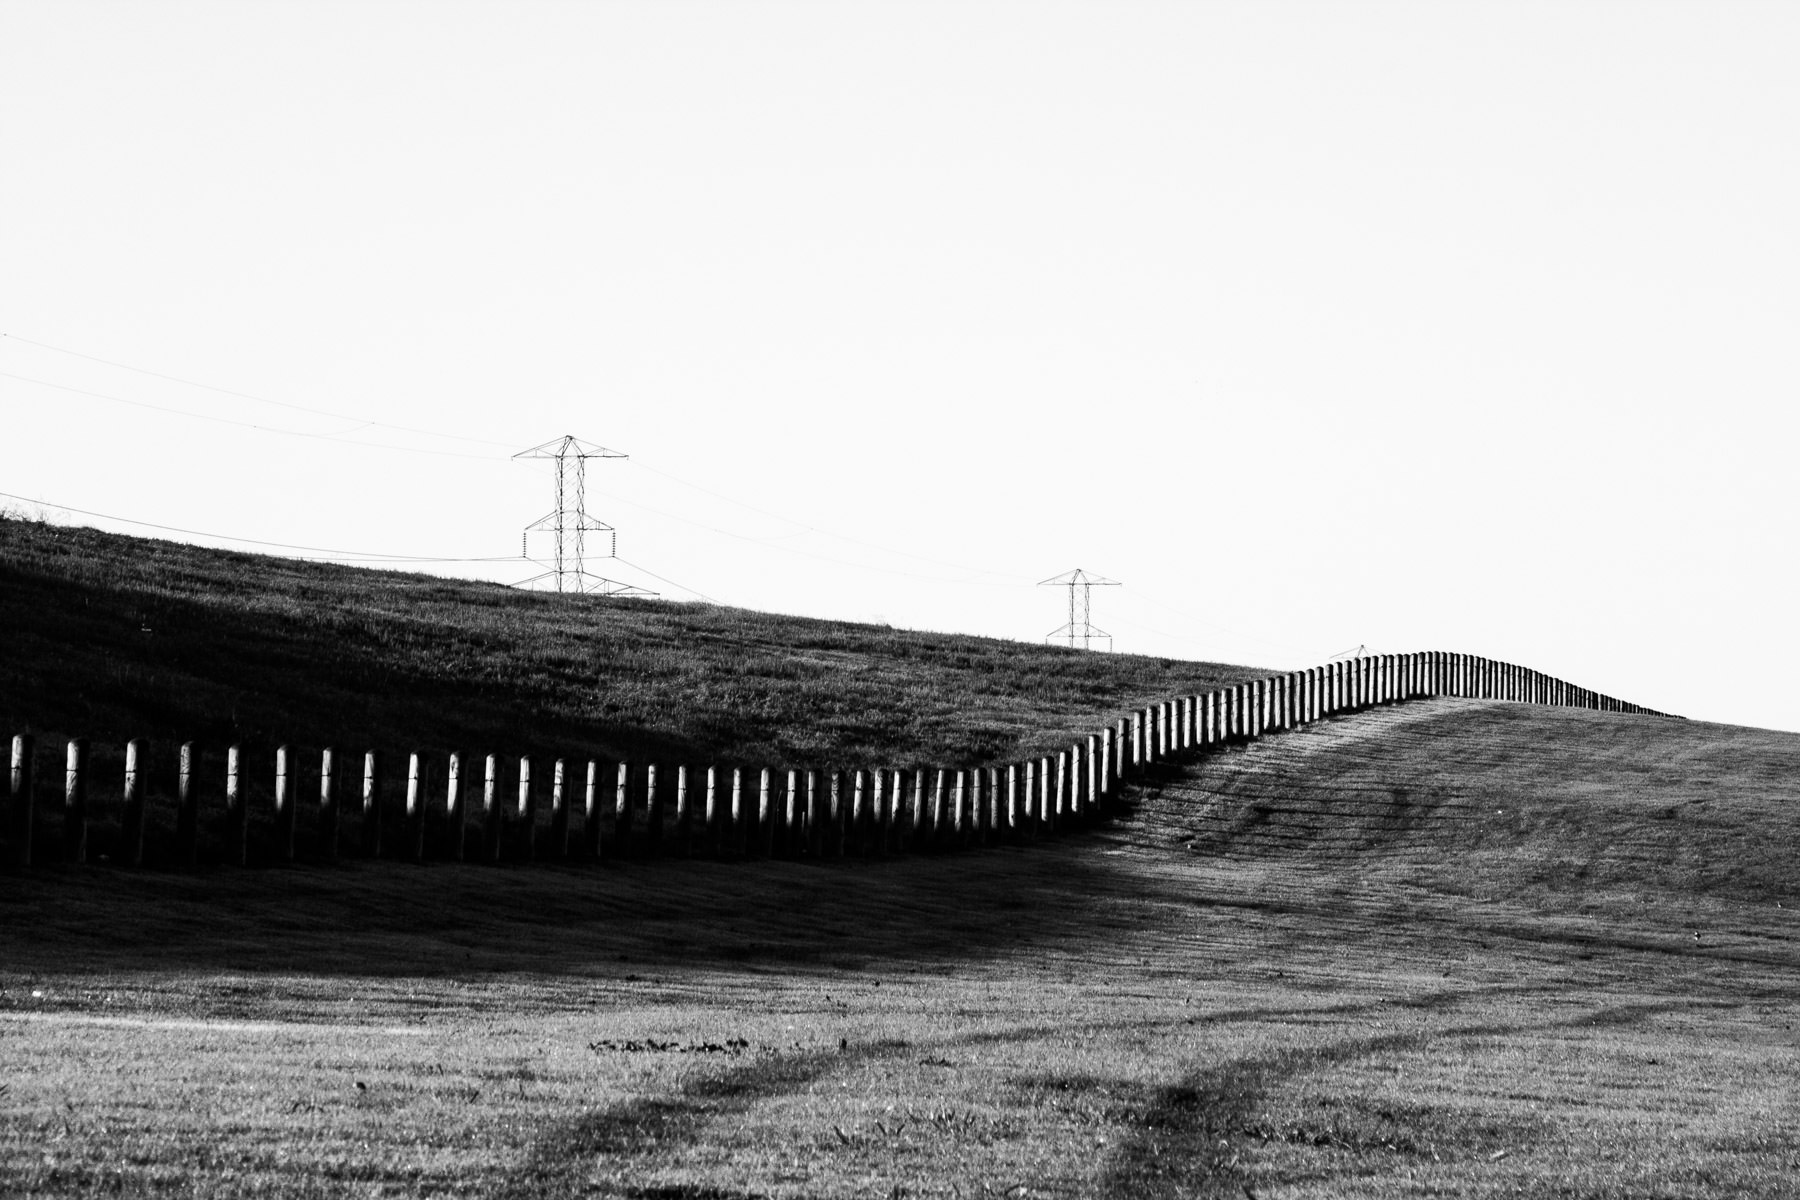 Barriers lead over a hill to the horizon in South Dallas.